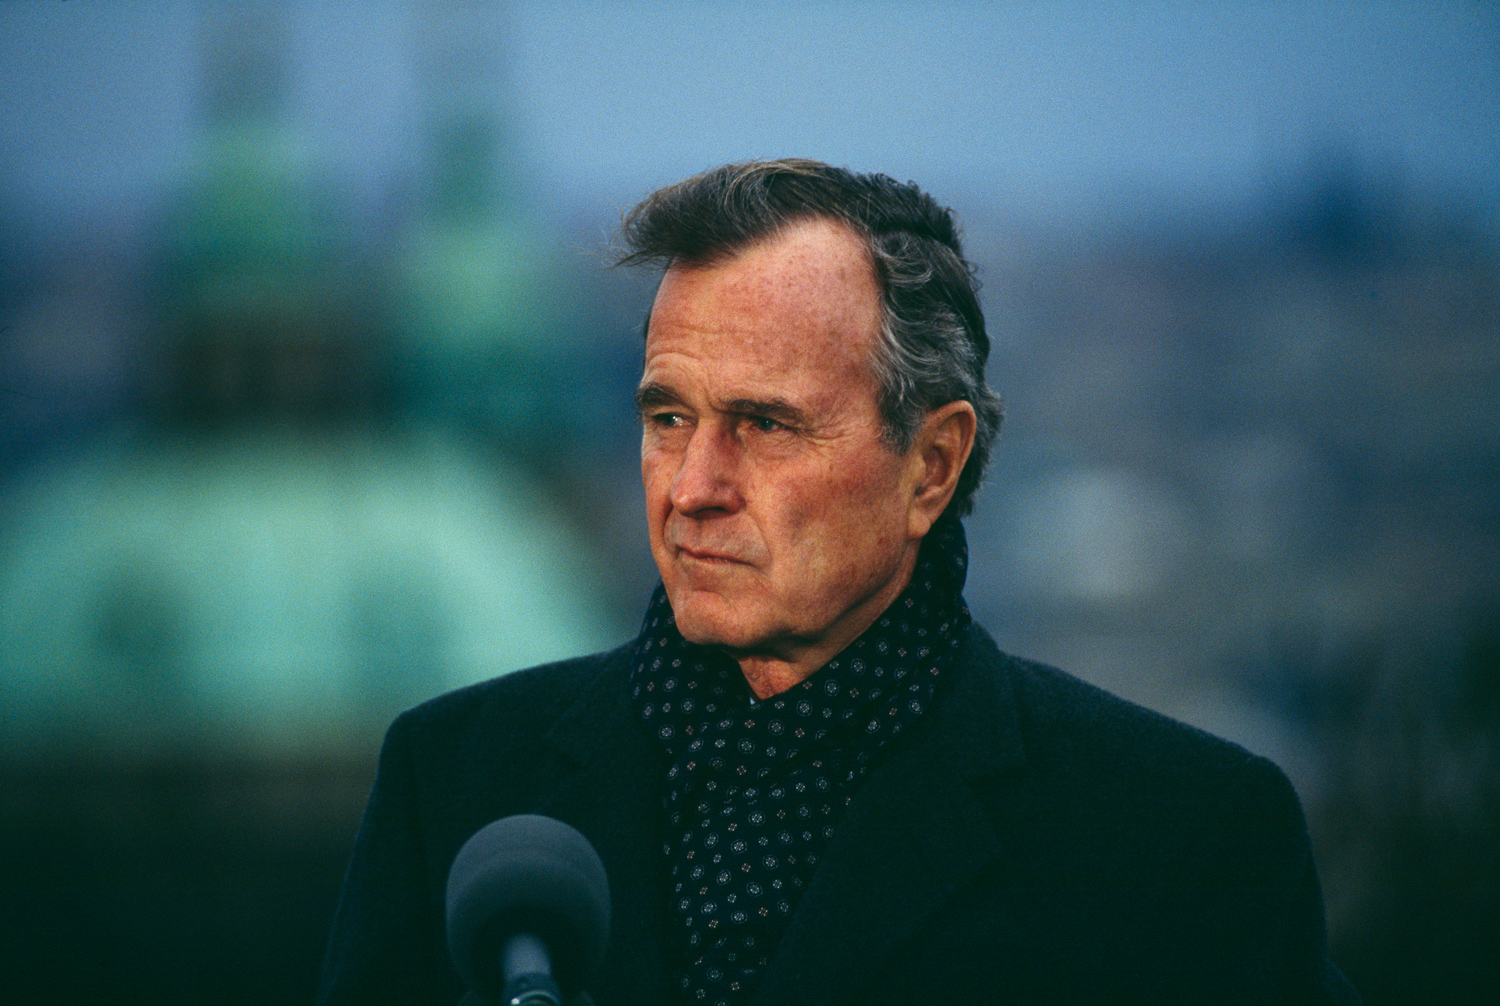 President George H.W. Bush bundled-up against autumn chill, speaking while visiting Prague, Czechoslovakia, November 18, 1990.